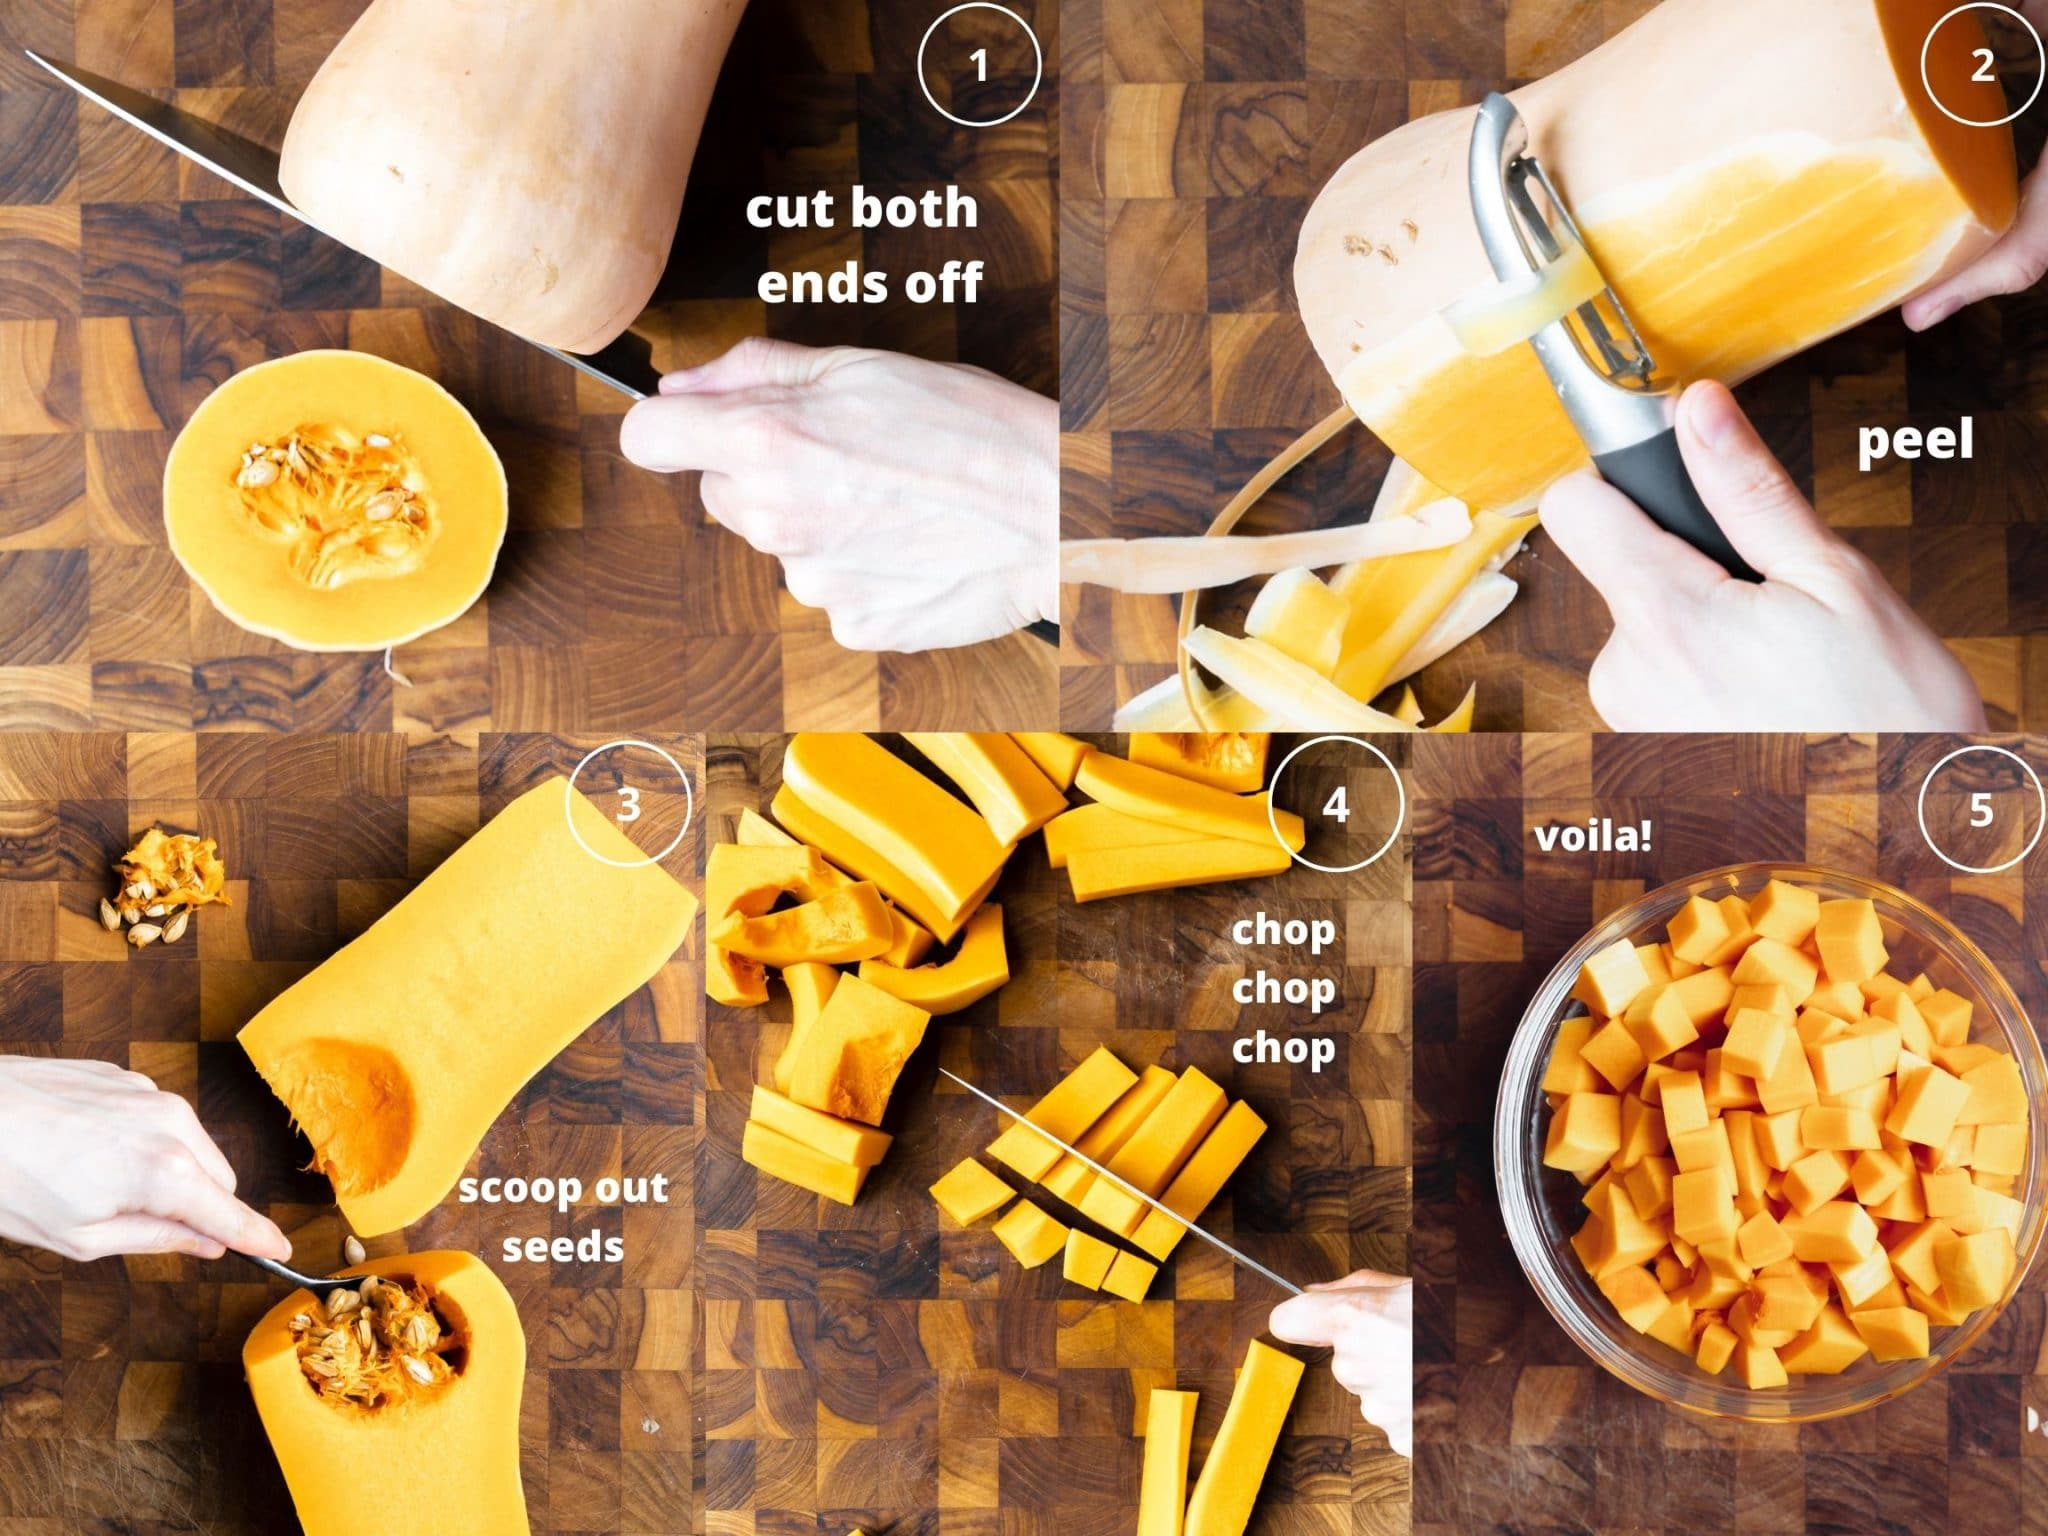 step by step photos of how to cut a butternut squash